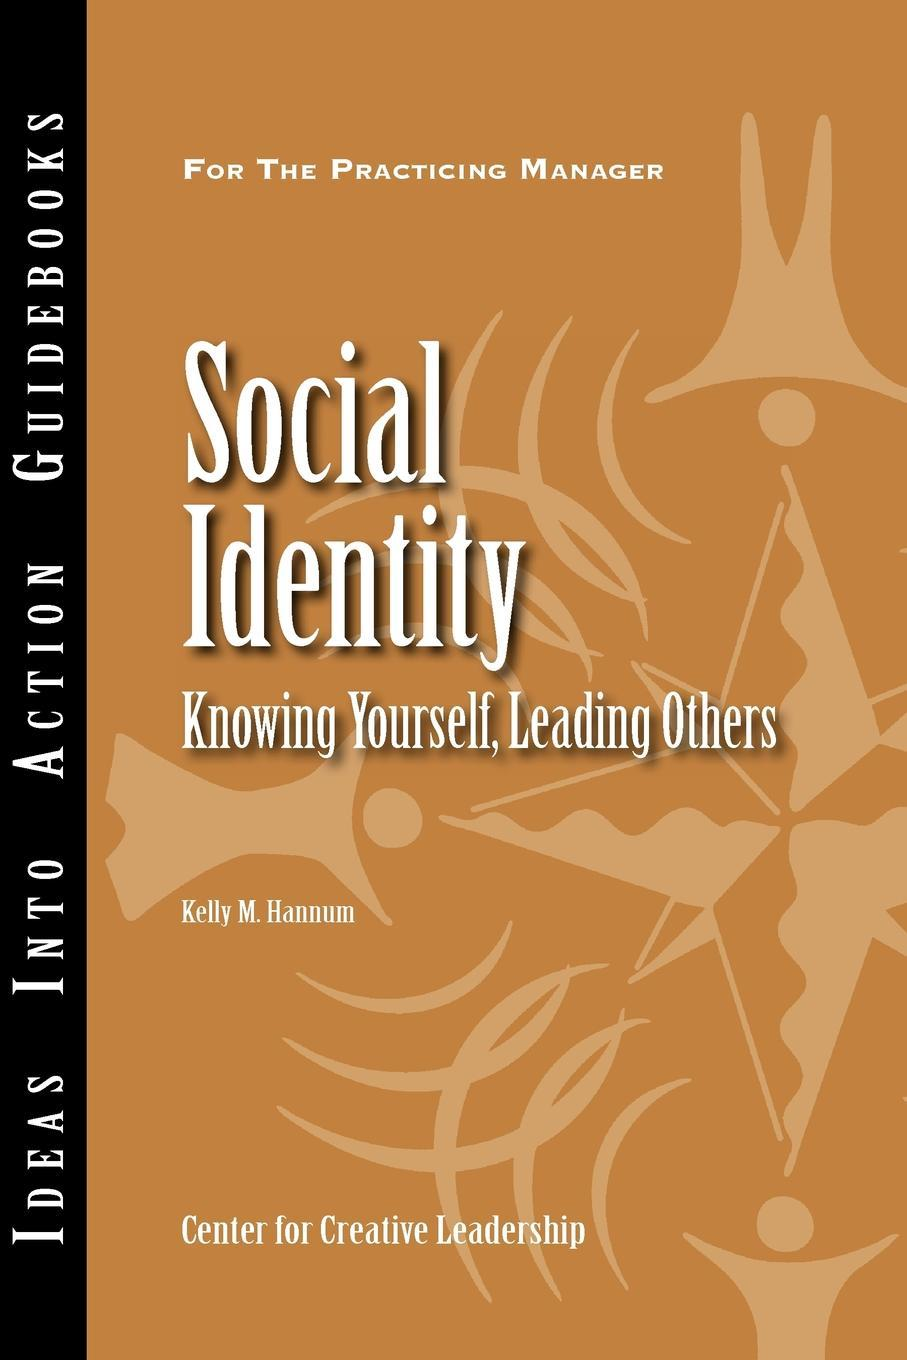 Social Identity: Knowing Yourself, Leading Others (German) EB9781604911336